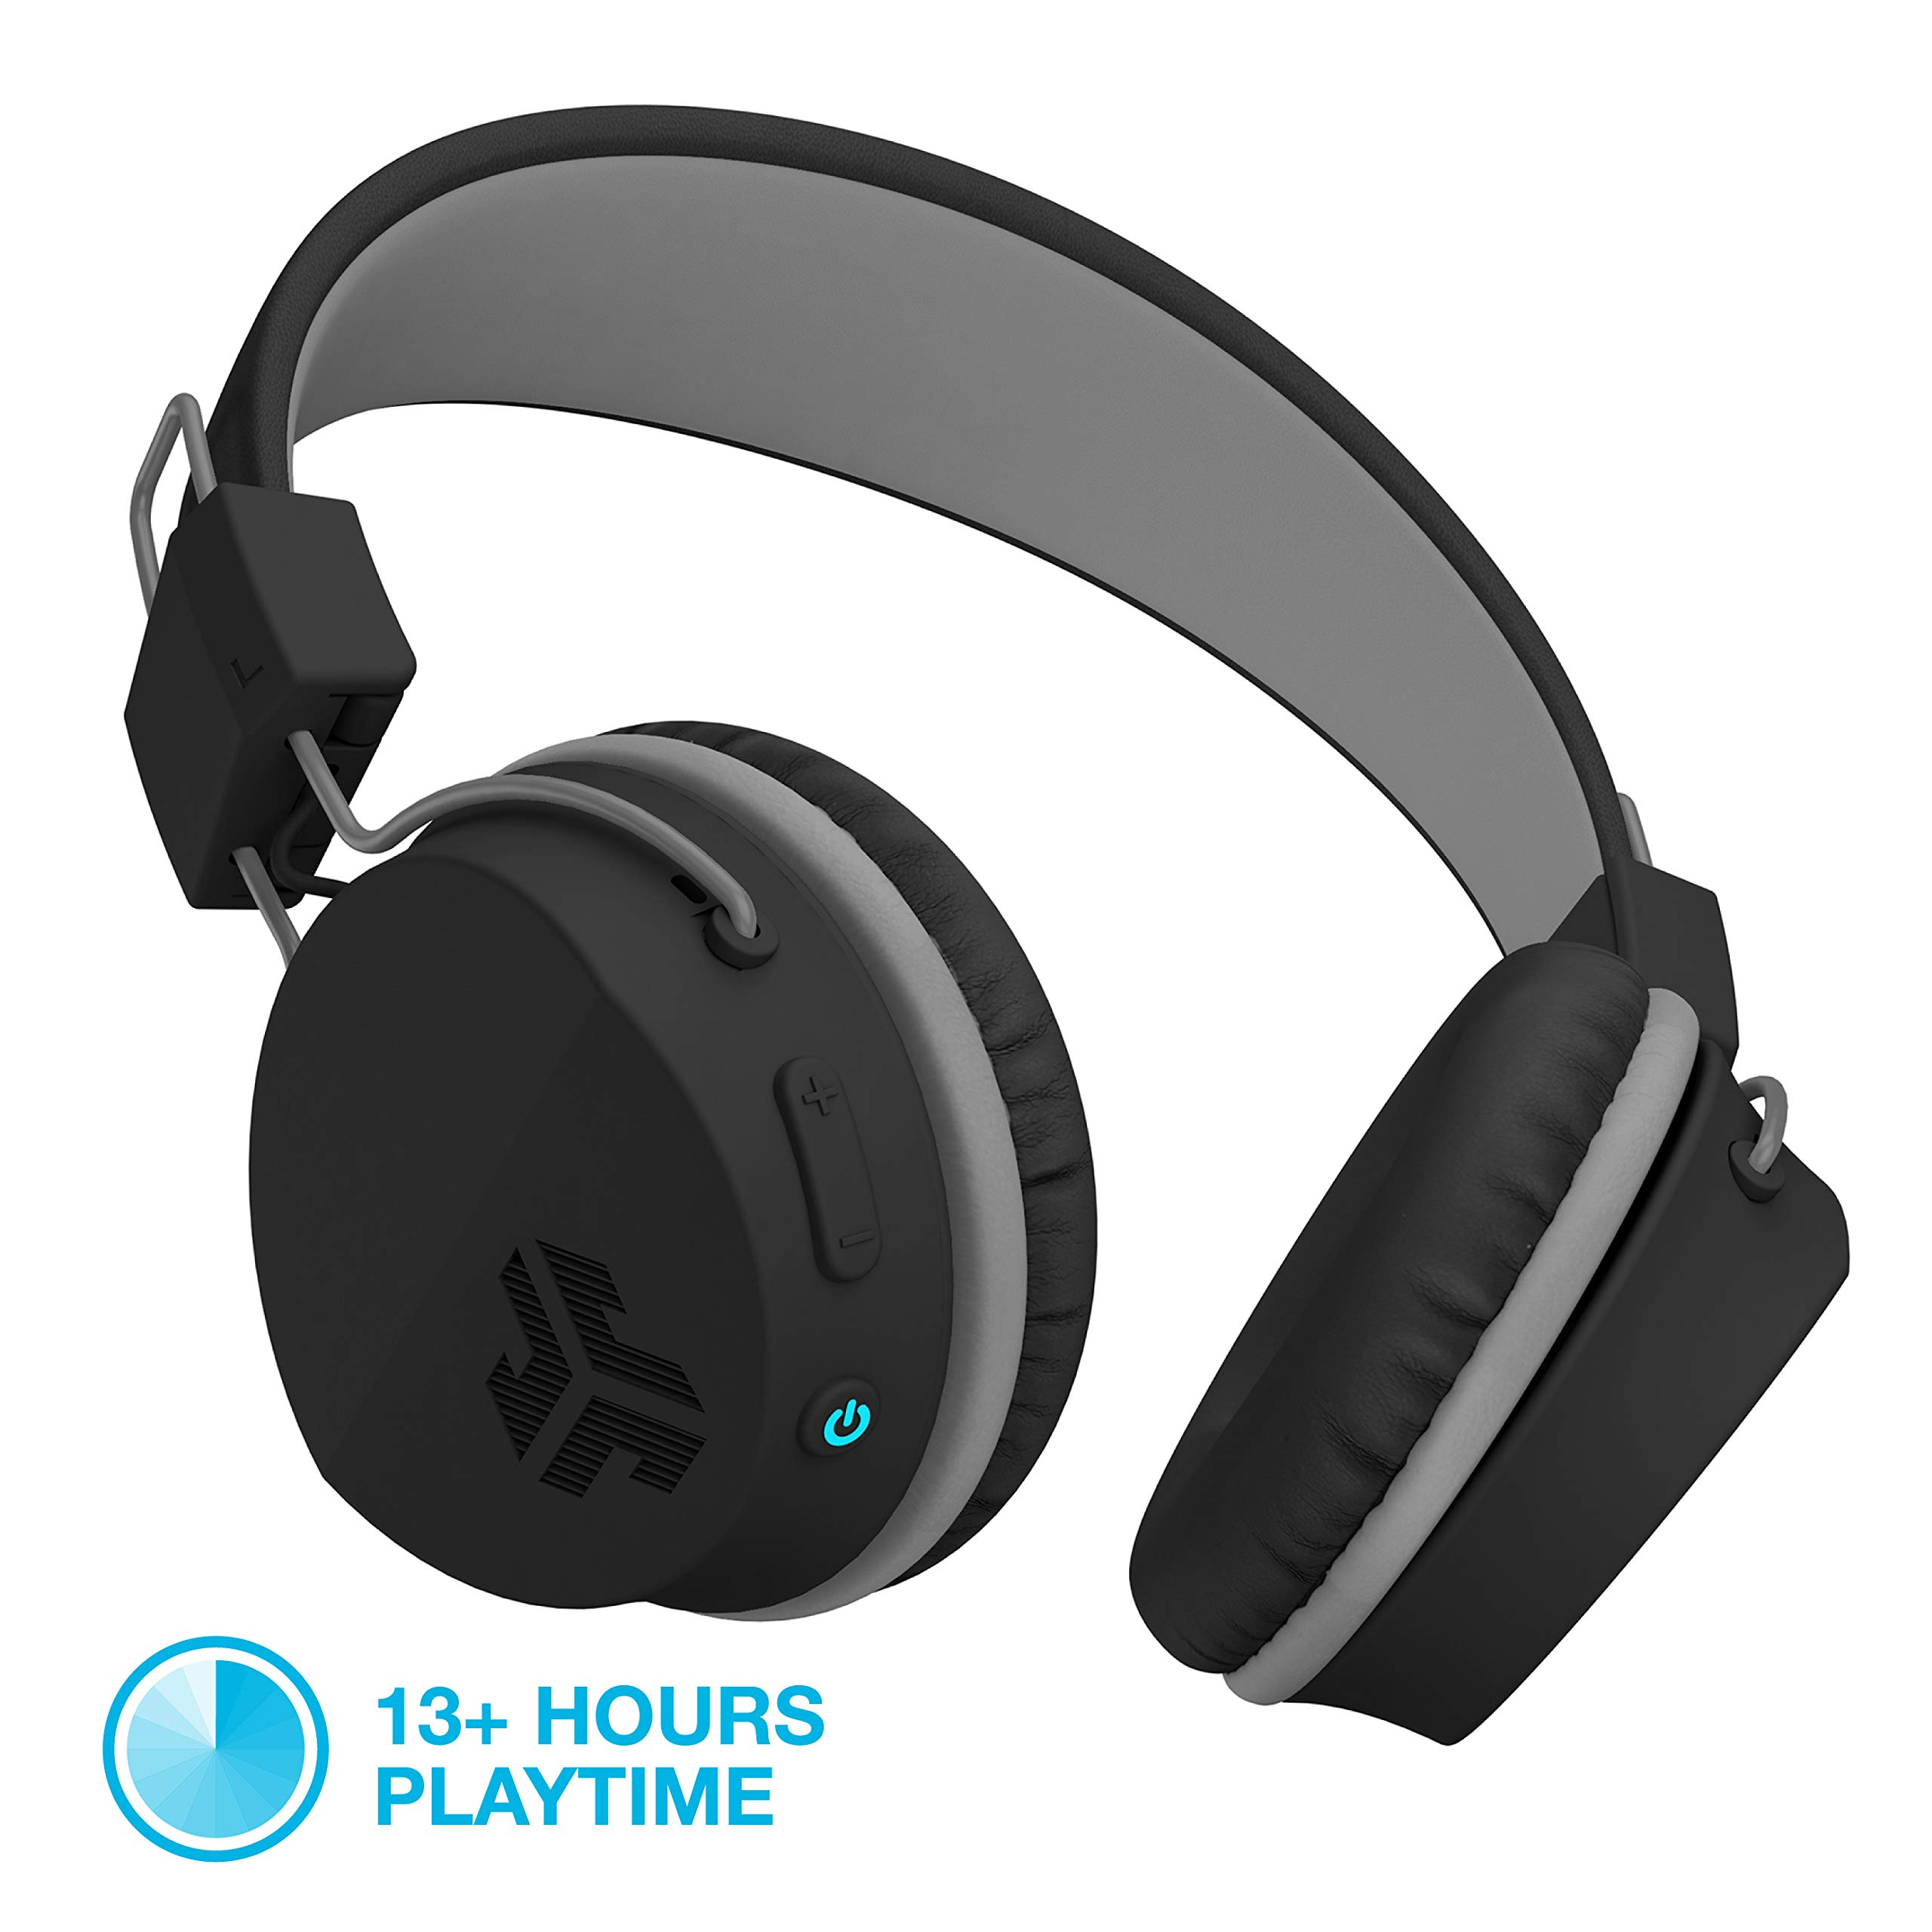 JLab Audio Neon Bluetooth Folding On Ear Headphones - Black - 13 Hour Bluetooth Playtime 40mm Neodymium Drivers C3 Sound (Crystal Clear Clarity)